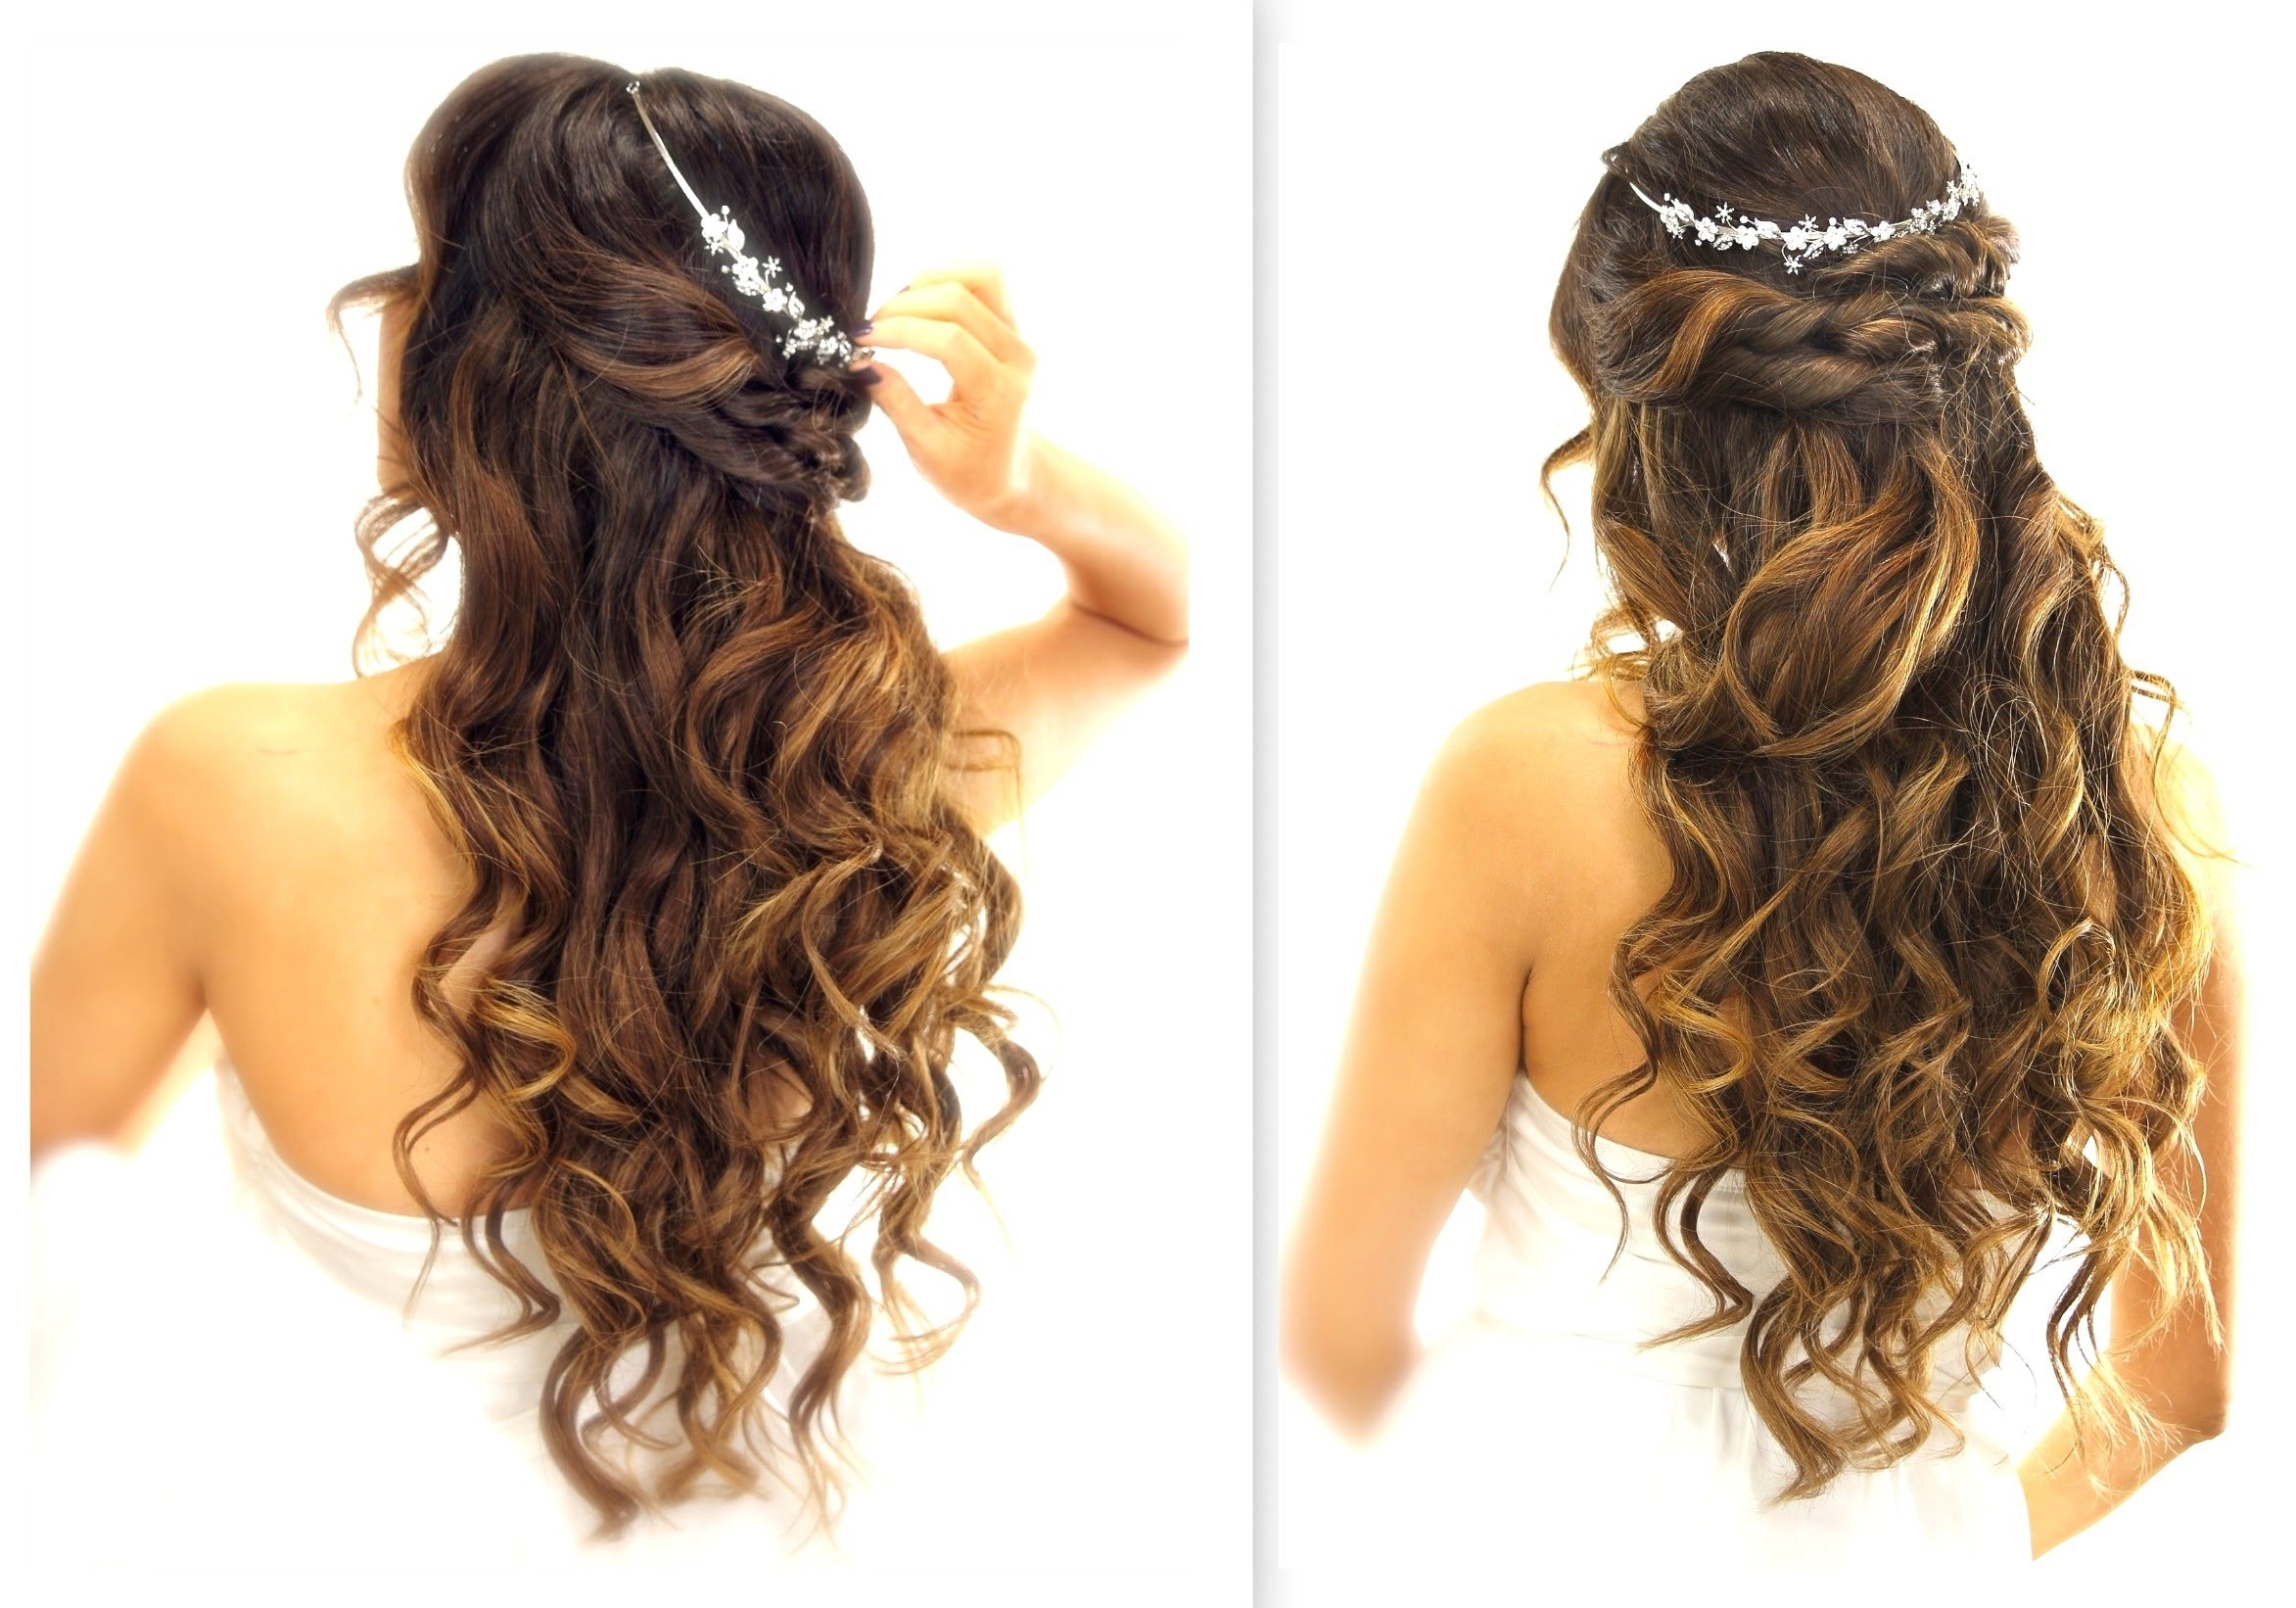 Bridal Hairstyles (View 2 of 15)